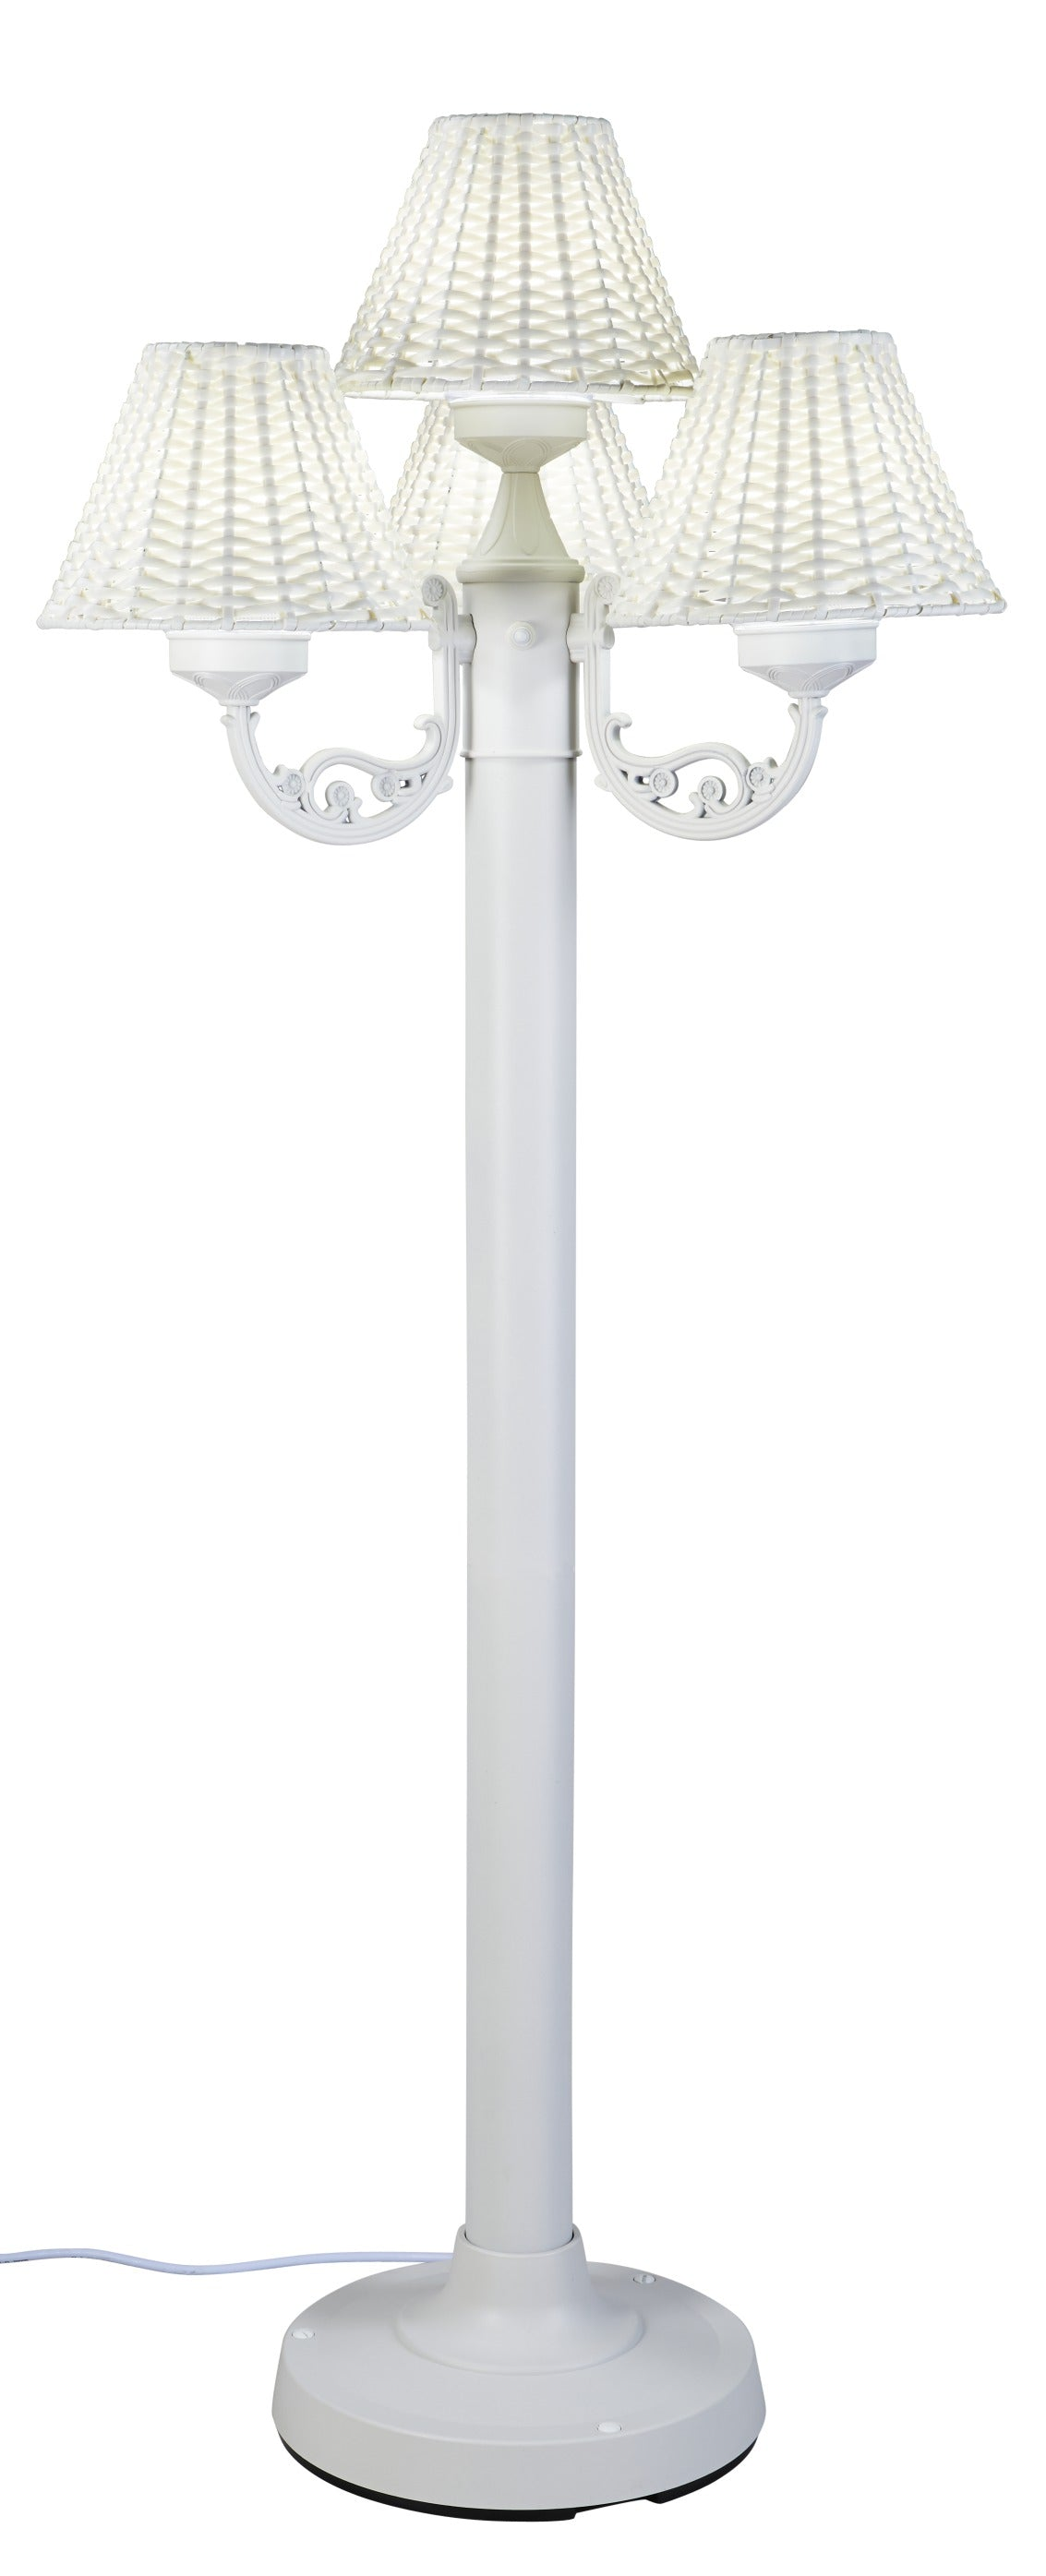 Versailles Floor Lamp 10451 with White Body and White Wicker Shades